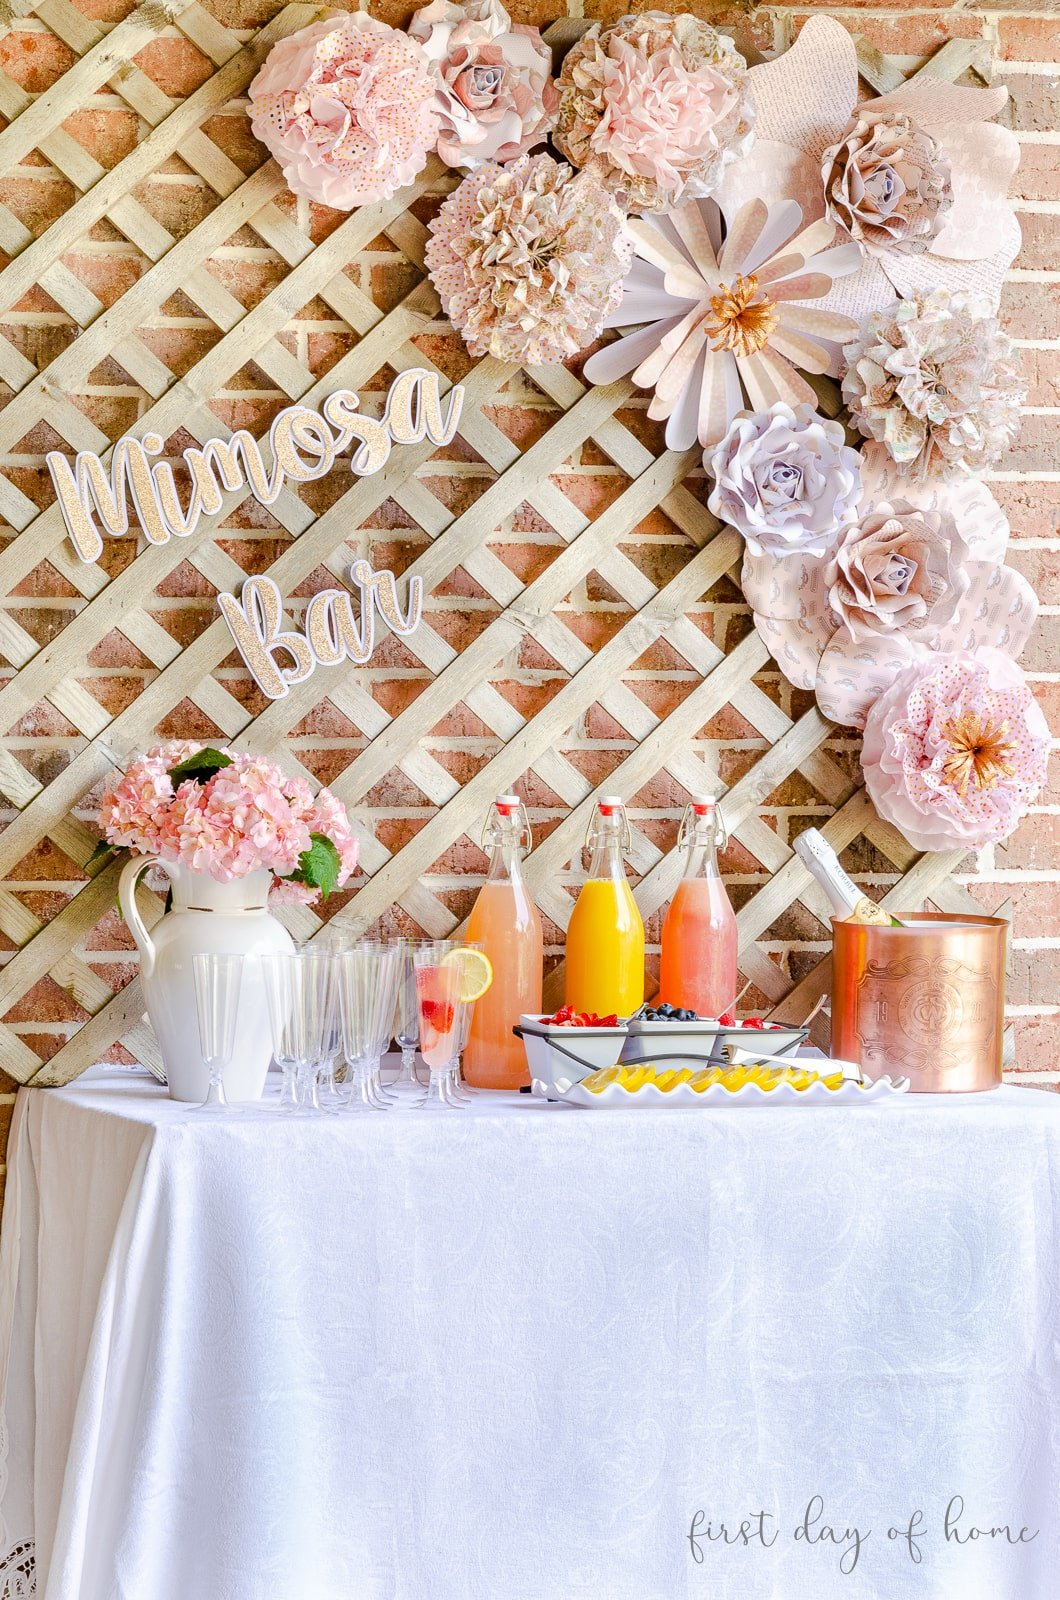 Mimosa bar decor including paper flowers and DIY tissue paper pom poms, perfect for bridal shower